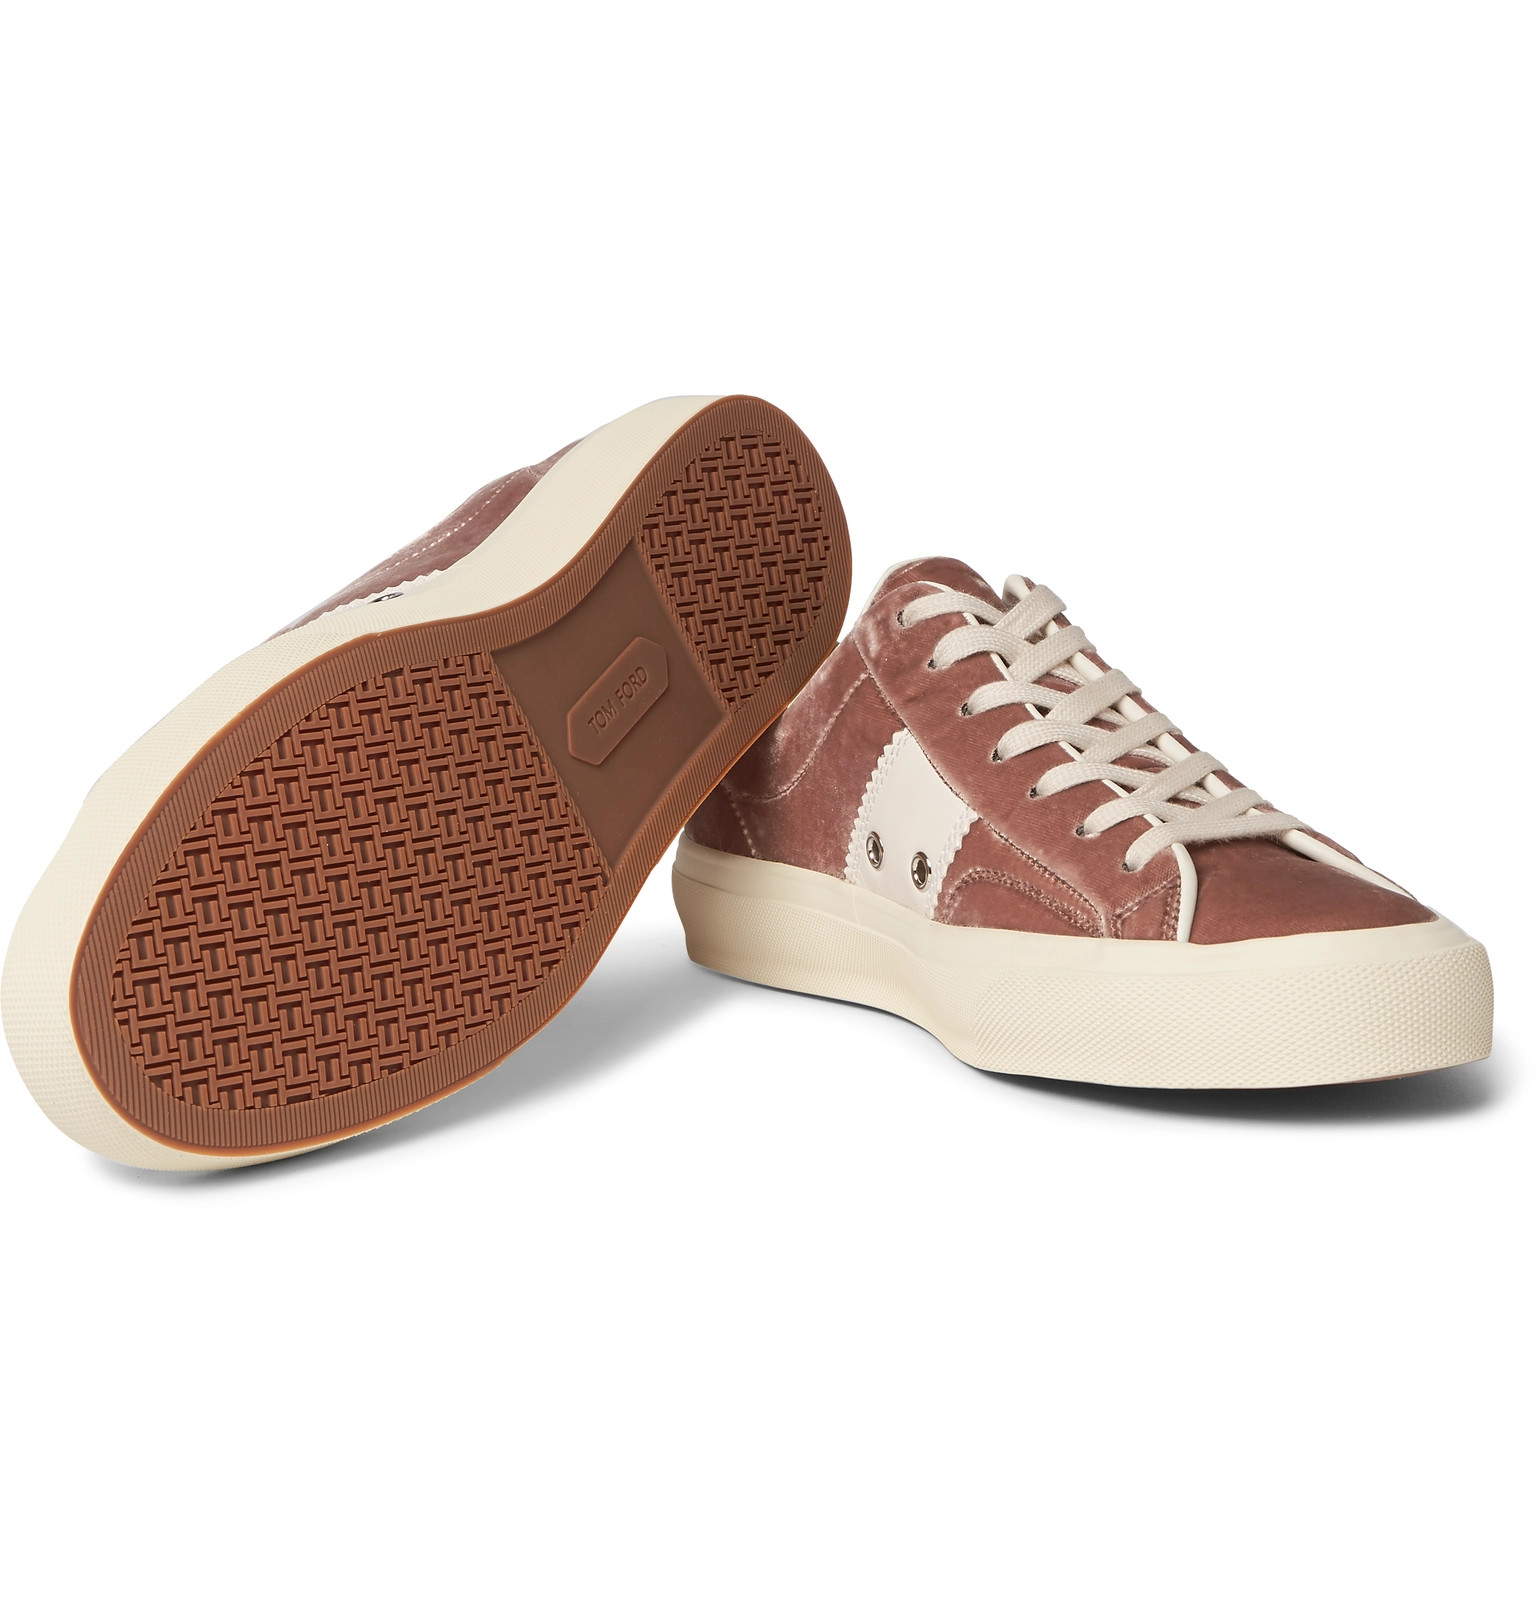 Trimmed Tom Cambridge Velvet Sneakers Leather Ford prwCqr